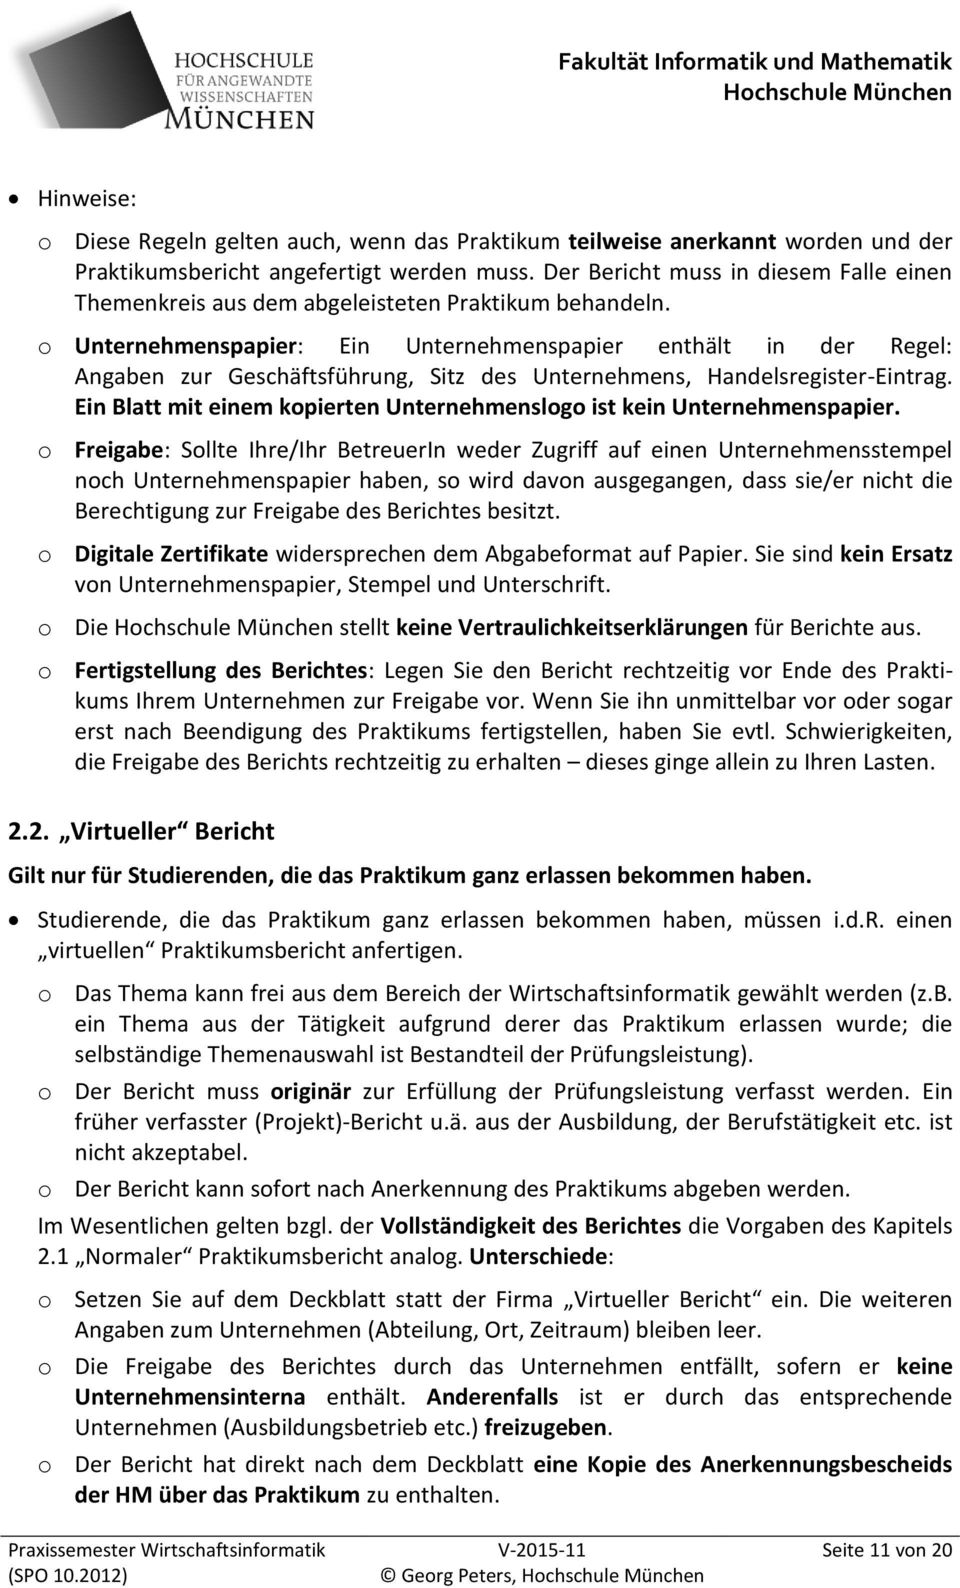 optionales praktikumsplatz augsburg